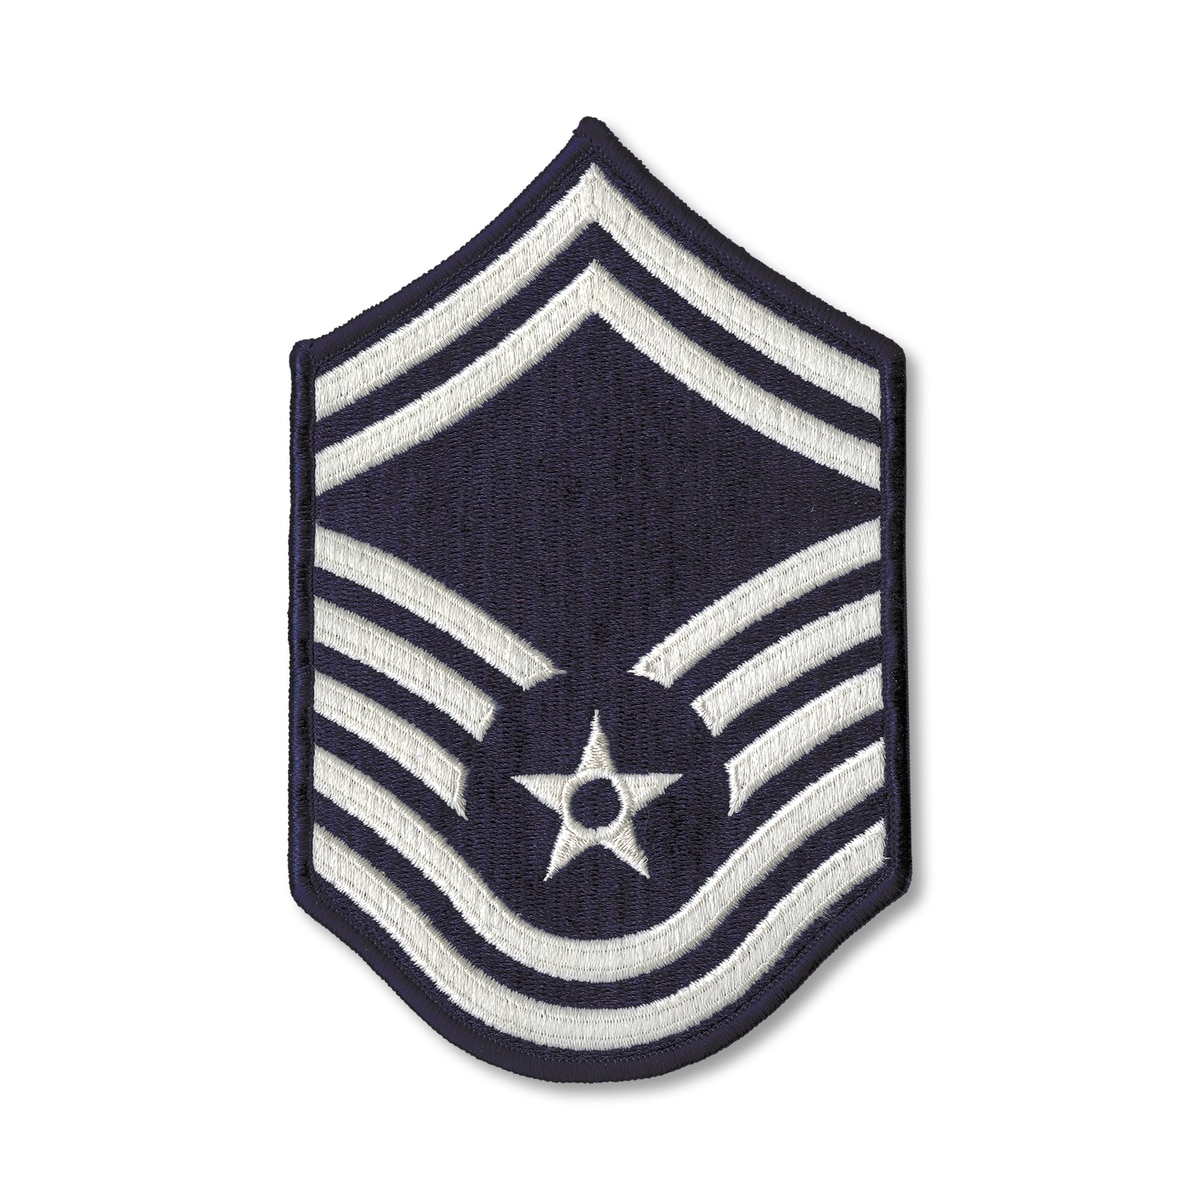 1,257 selected for promotion to senior master sergeant